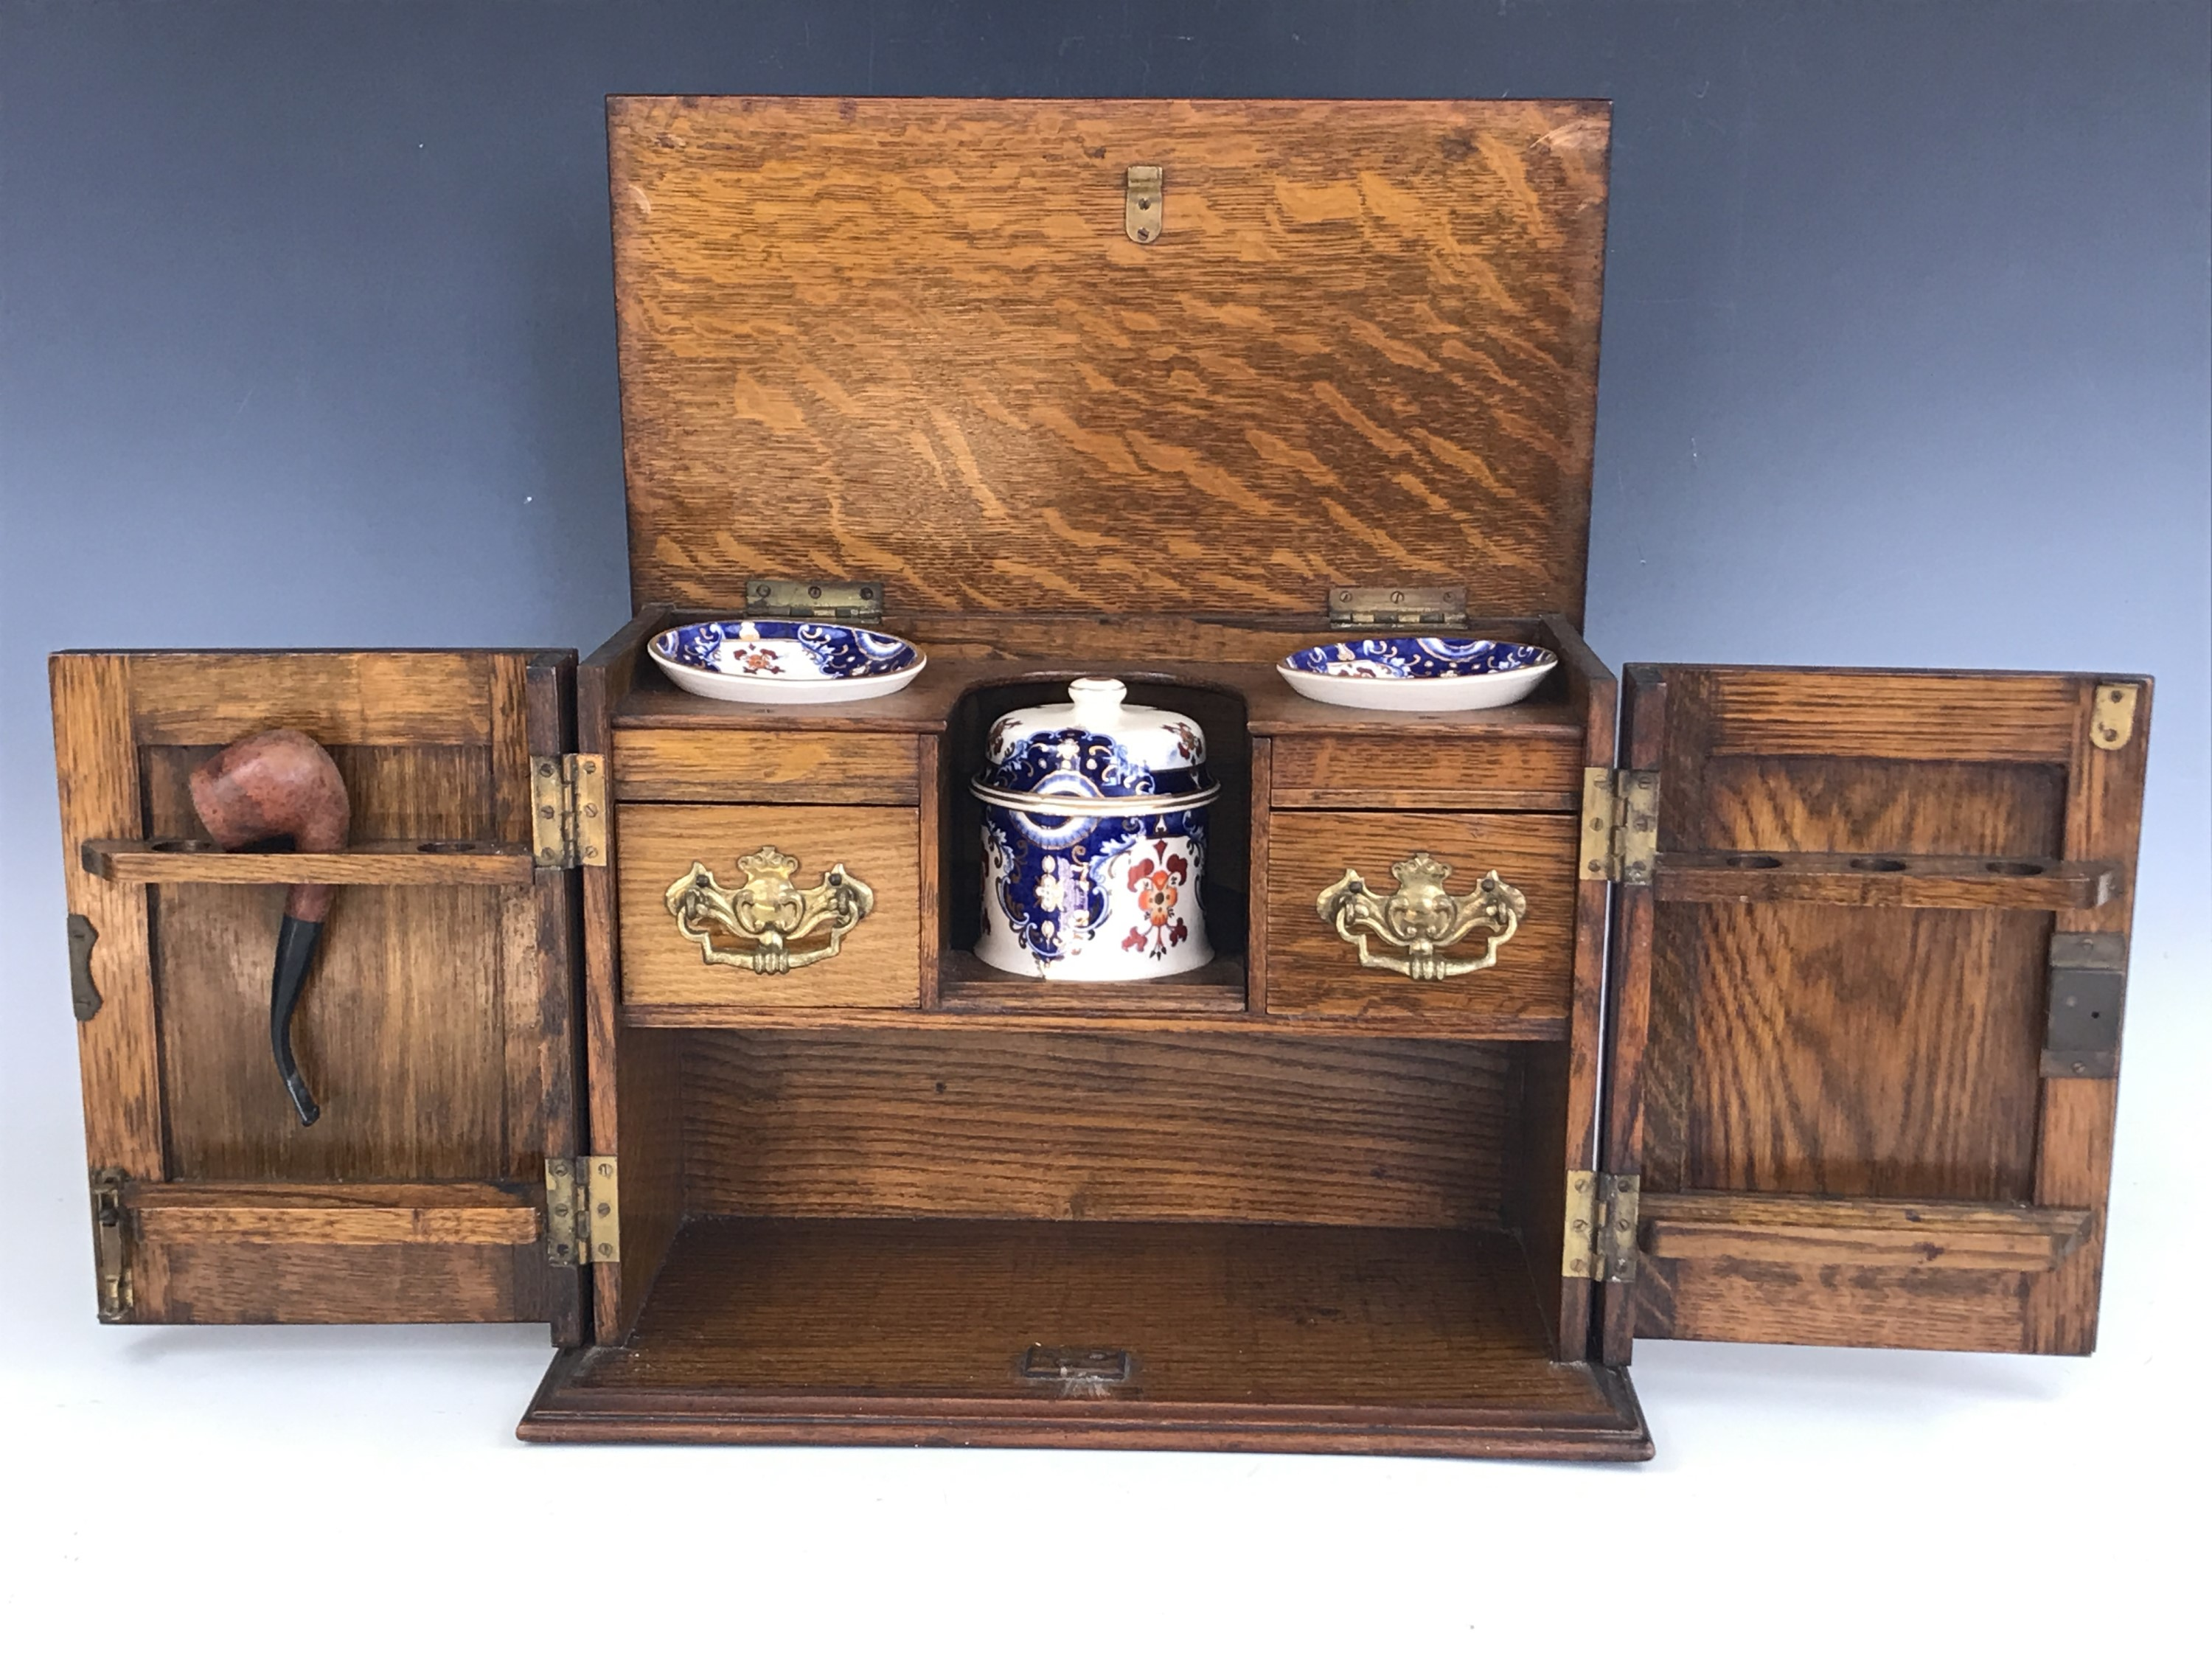 Lot 26 - A late 19th / early 20th Century smokers' oak compendium